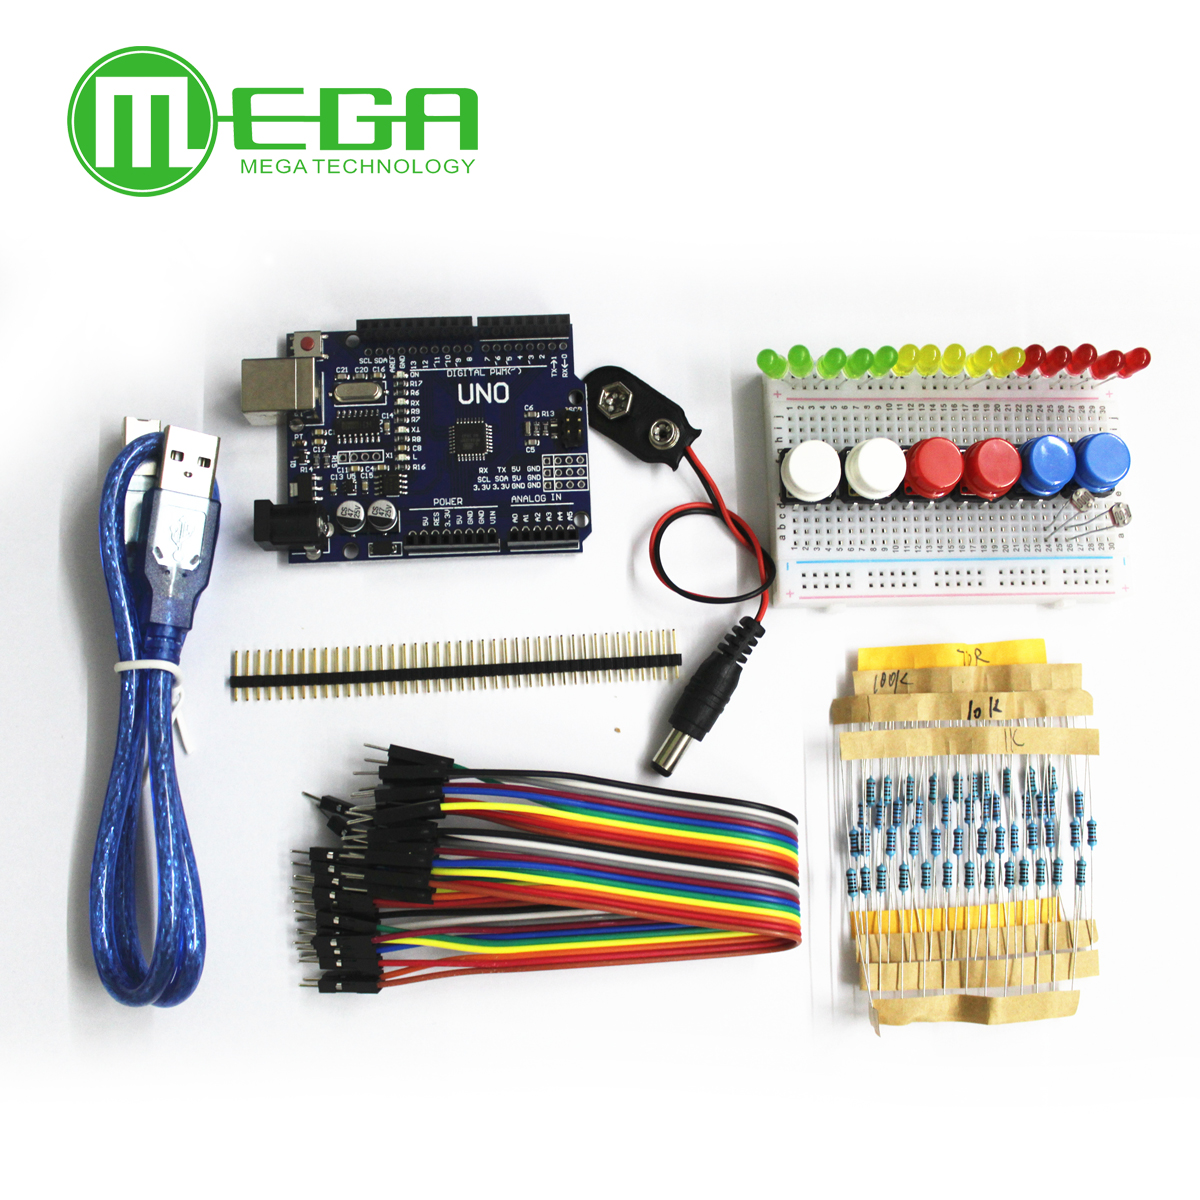 """Ils//â/€/""""/USB Uno R3/Development Board with 2.8/inch TFT Touch Screen Module for A"""